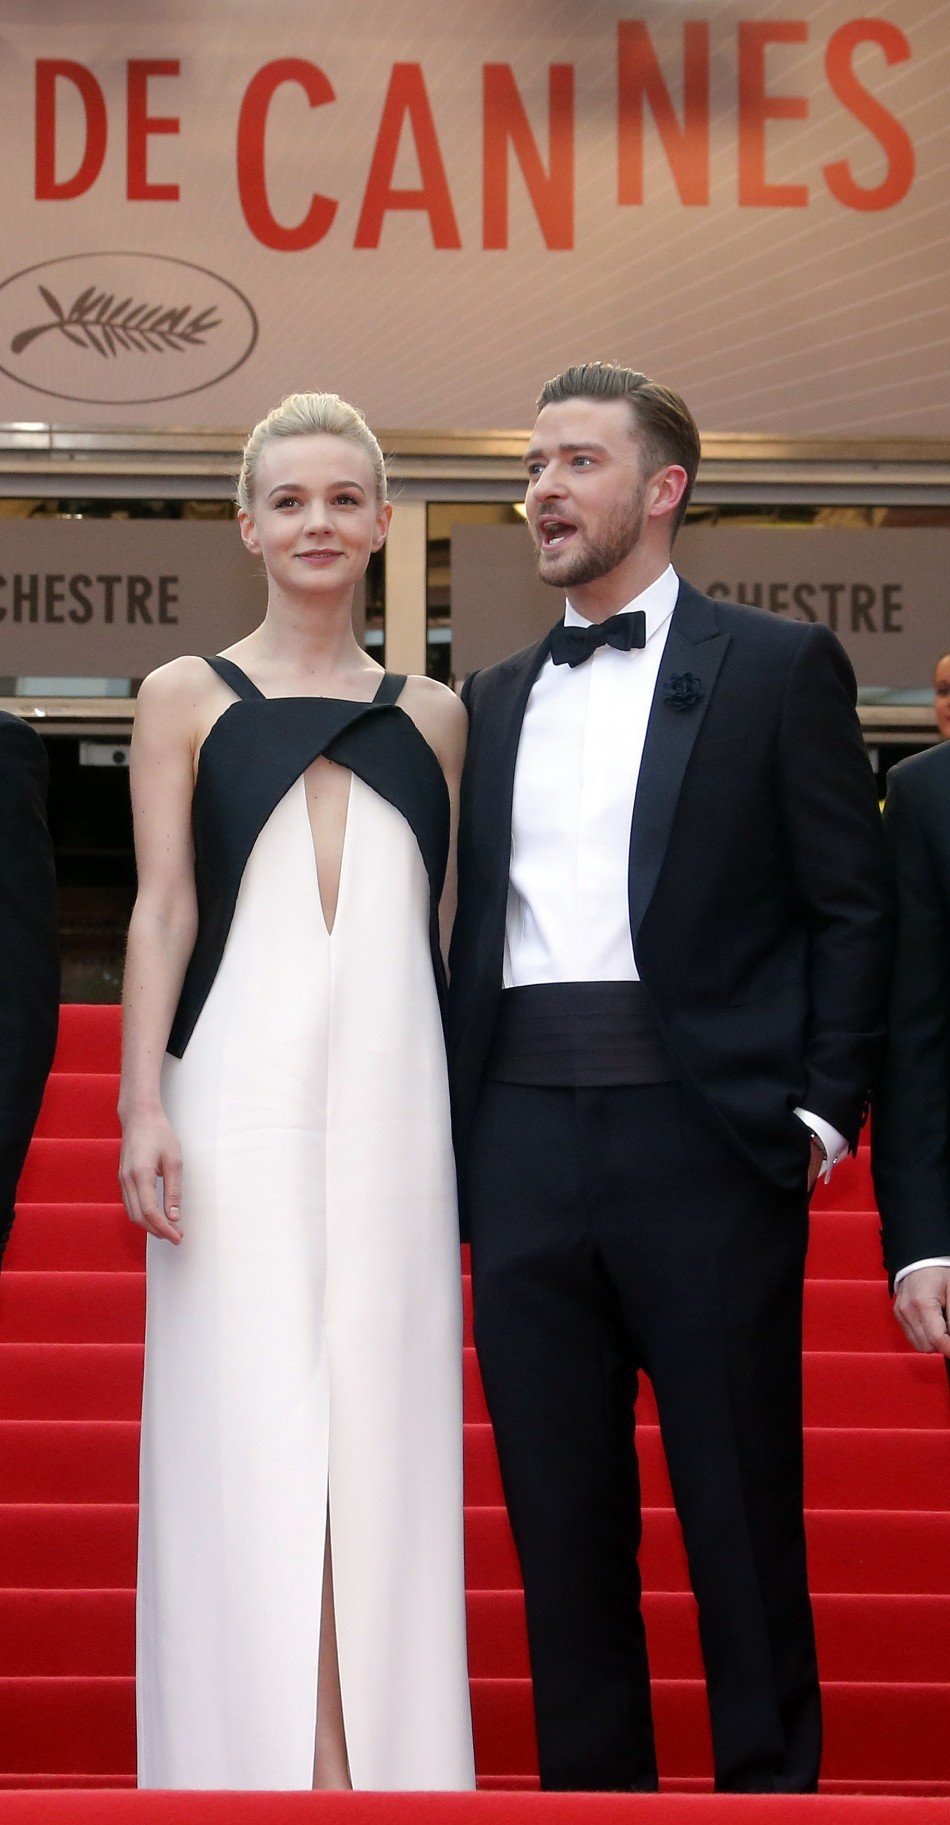 Cast members Carey Mulligan L and Justin Timberlake pose on the red carpet as they arrive for the screening of the film Inside Llewyn Davis in competition during the 66th Cannes Film Festival in Cannes May 19, 2013.